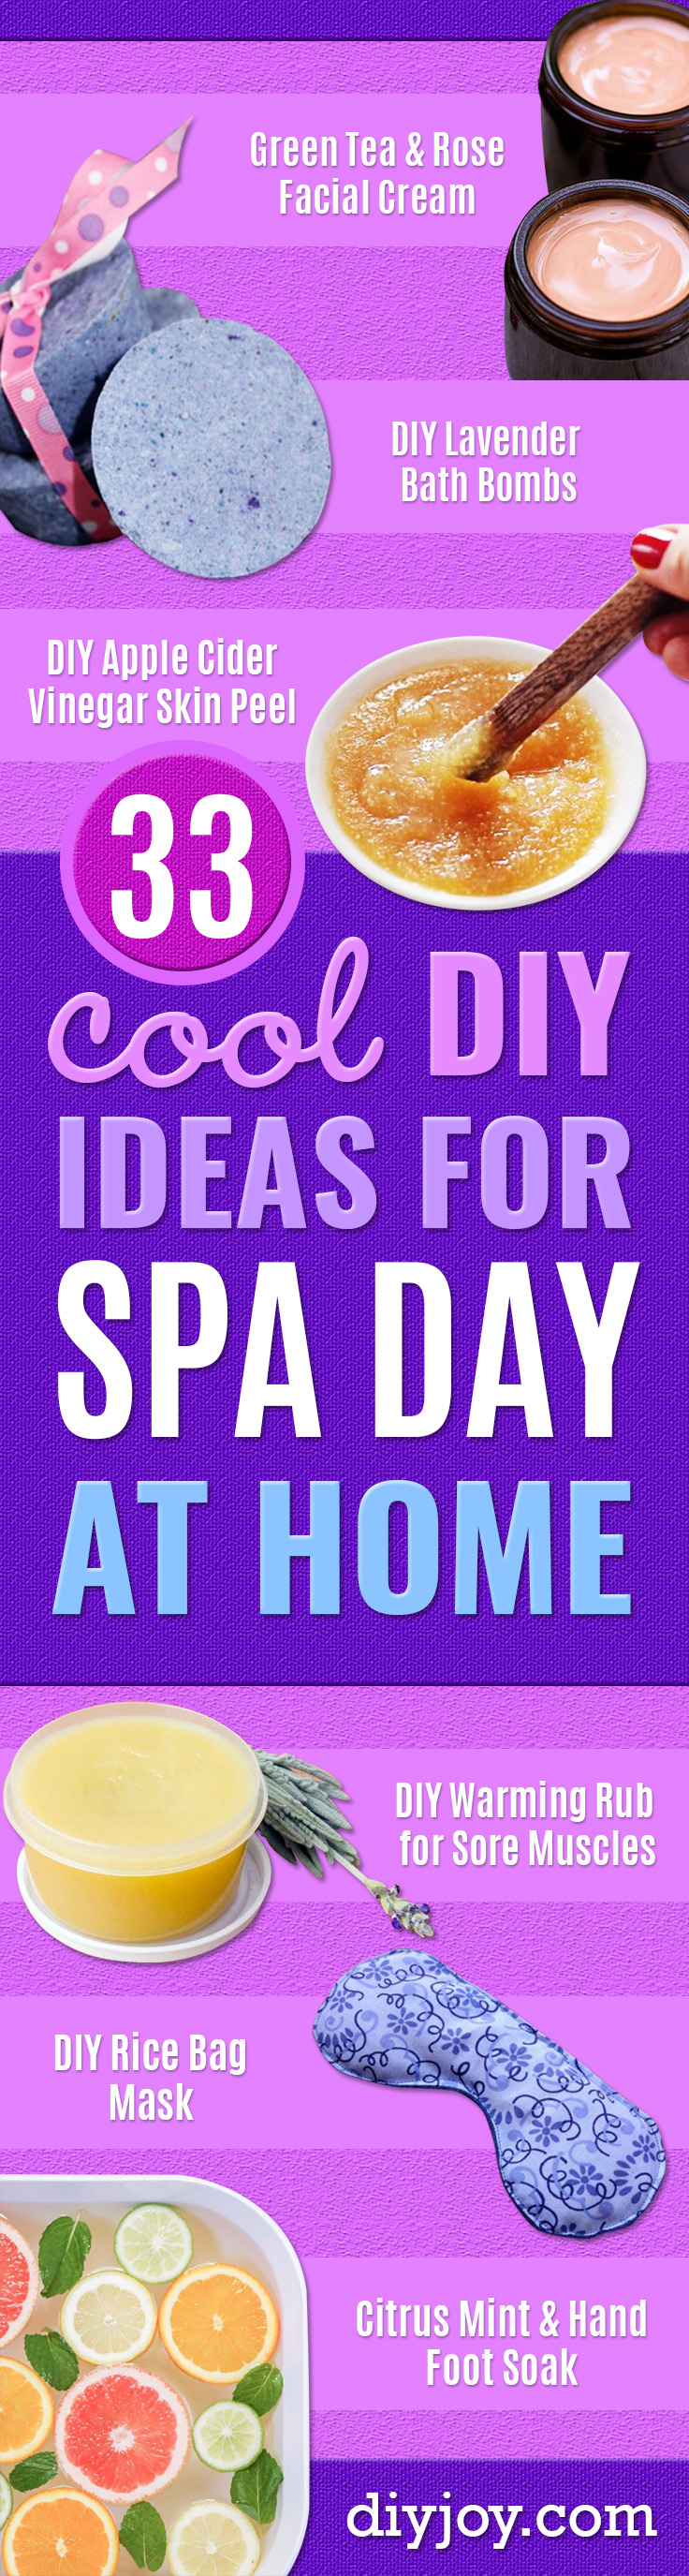 DIY Spa Day Ideas - Easy Sugar Scrubs, Lotions and Bath Ideas for The Best Pampering You Can Do At Home - Lavender Projects, Relaxing Baths and Bath Bombs, Tub Soaks and Facials - Step by Step Tutorials for Luxury Bath Products